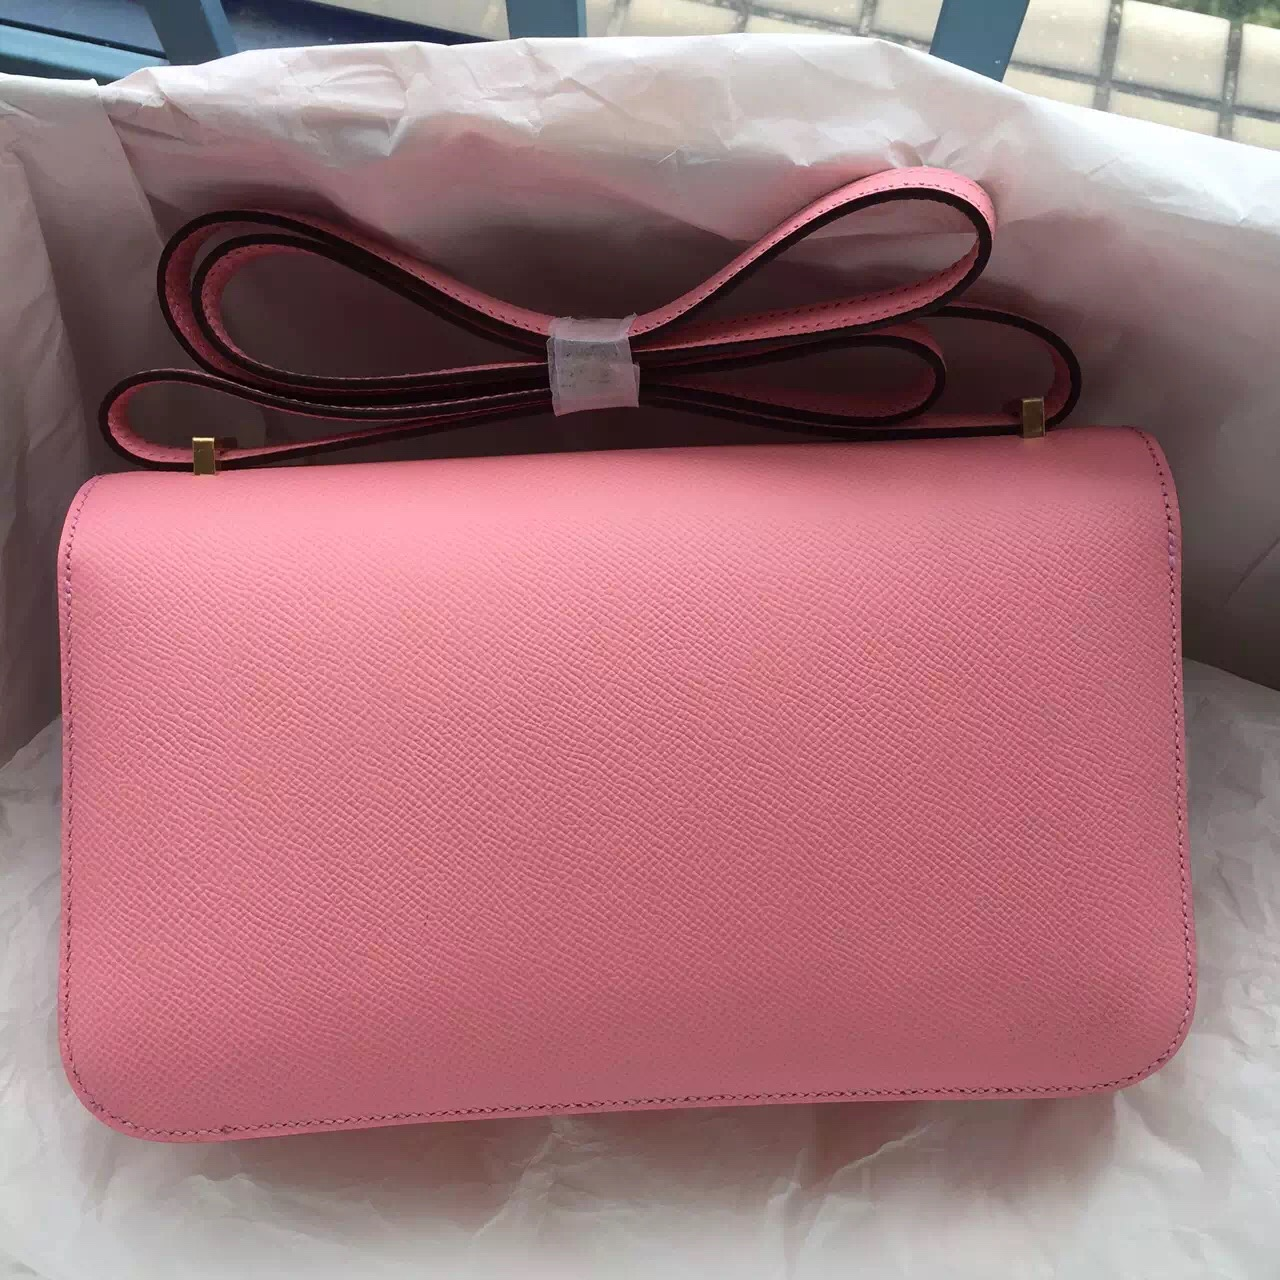 2015 Fashion New Hermes Constance Elan in 1Q Rose Confetti Epsom Leather Ladies' Bag